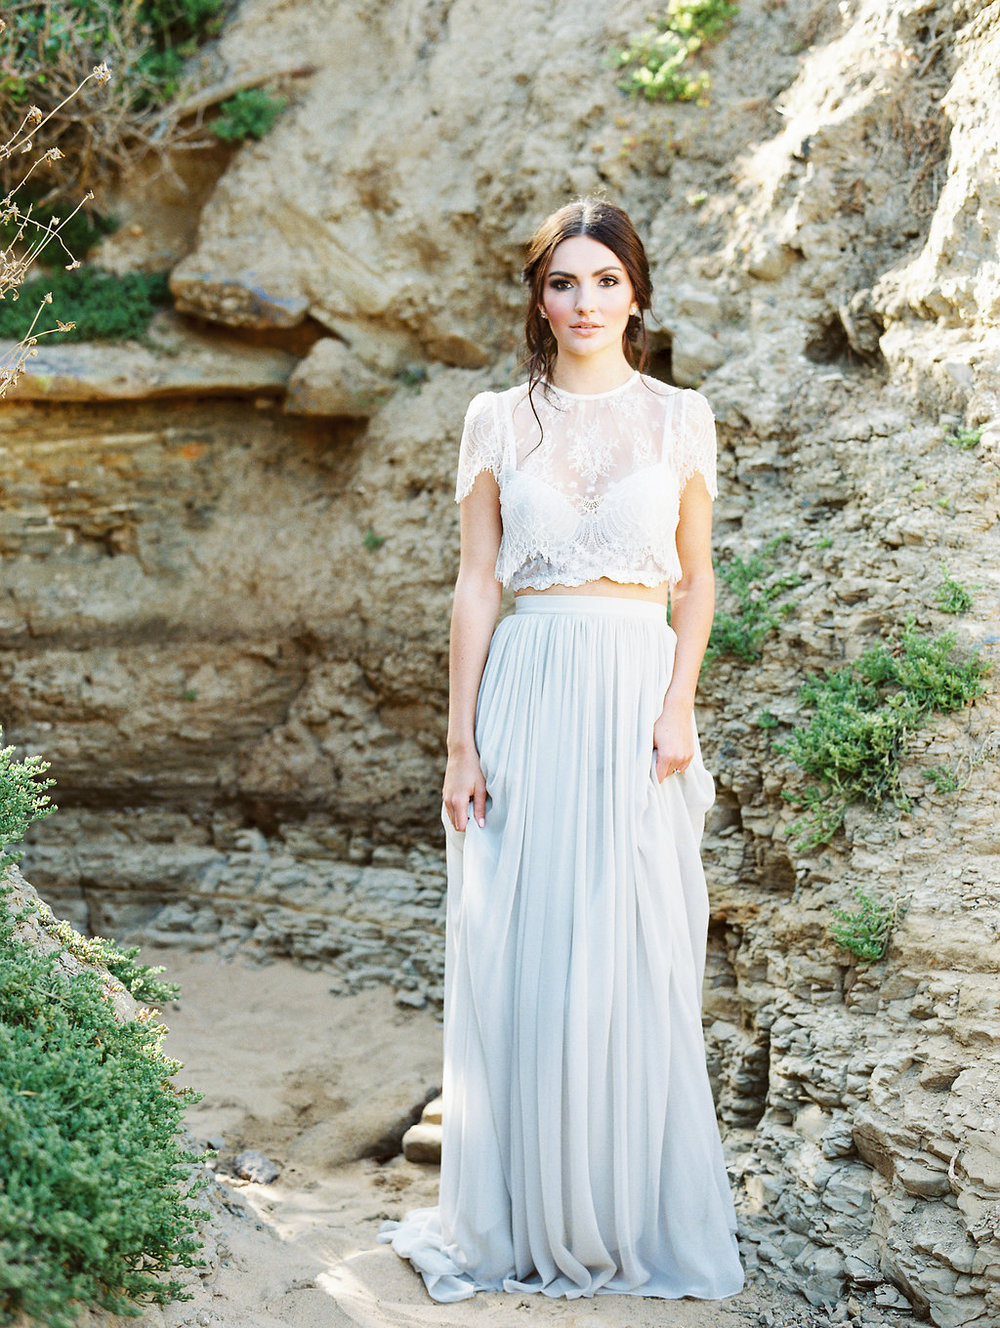 Plum and Berry Bridal Shoot